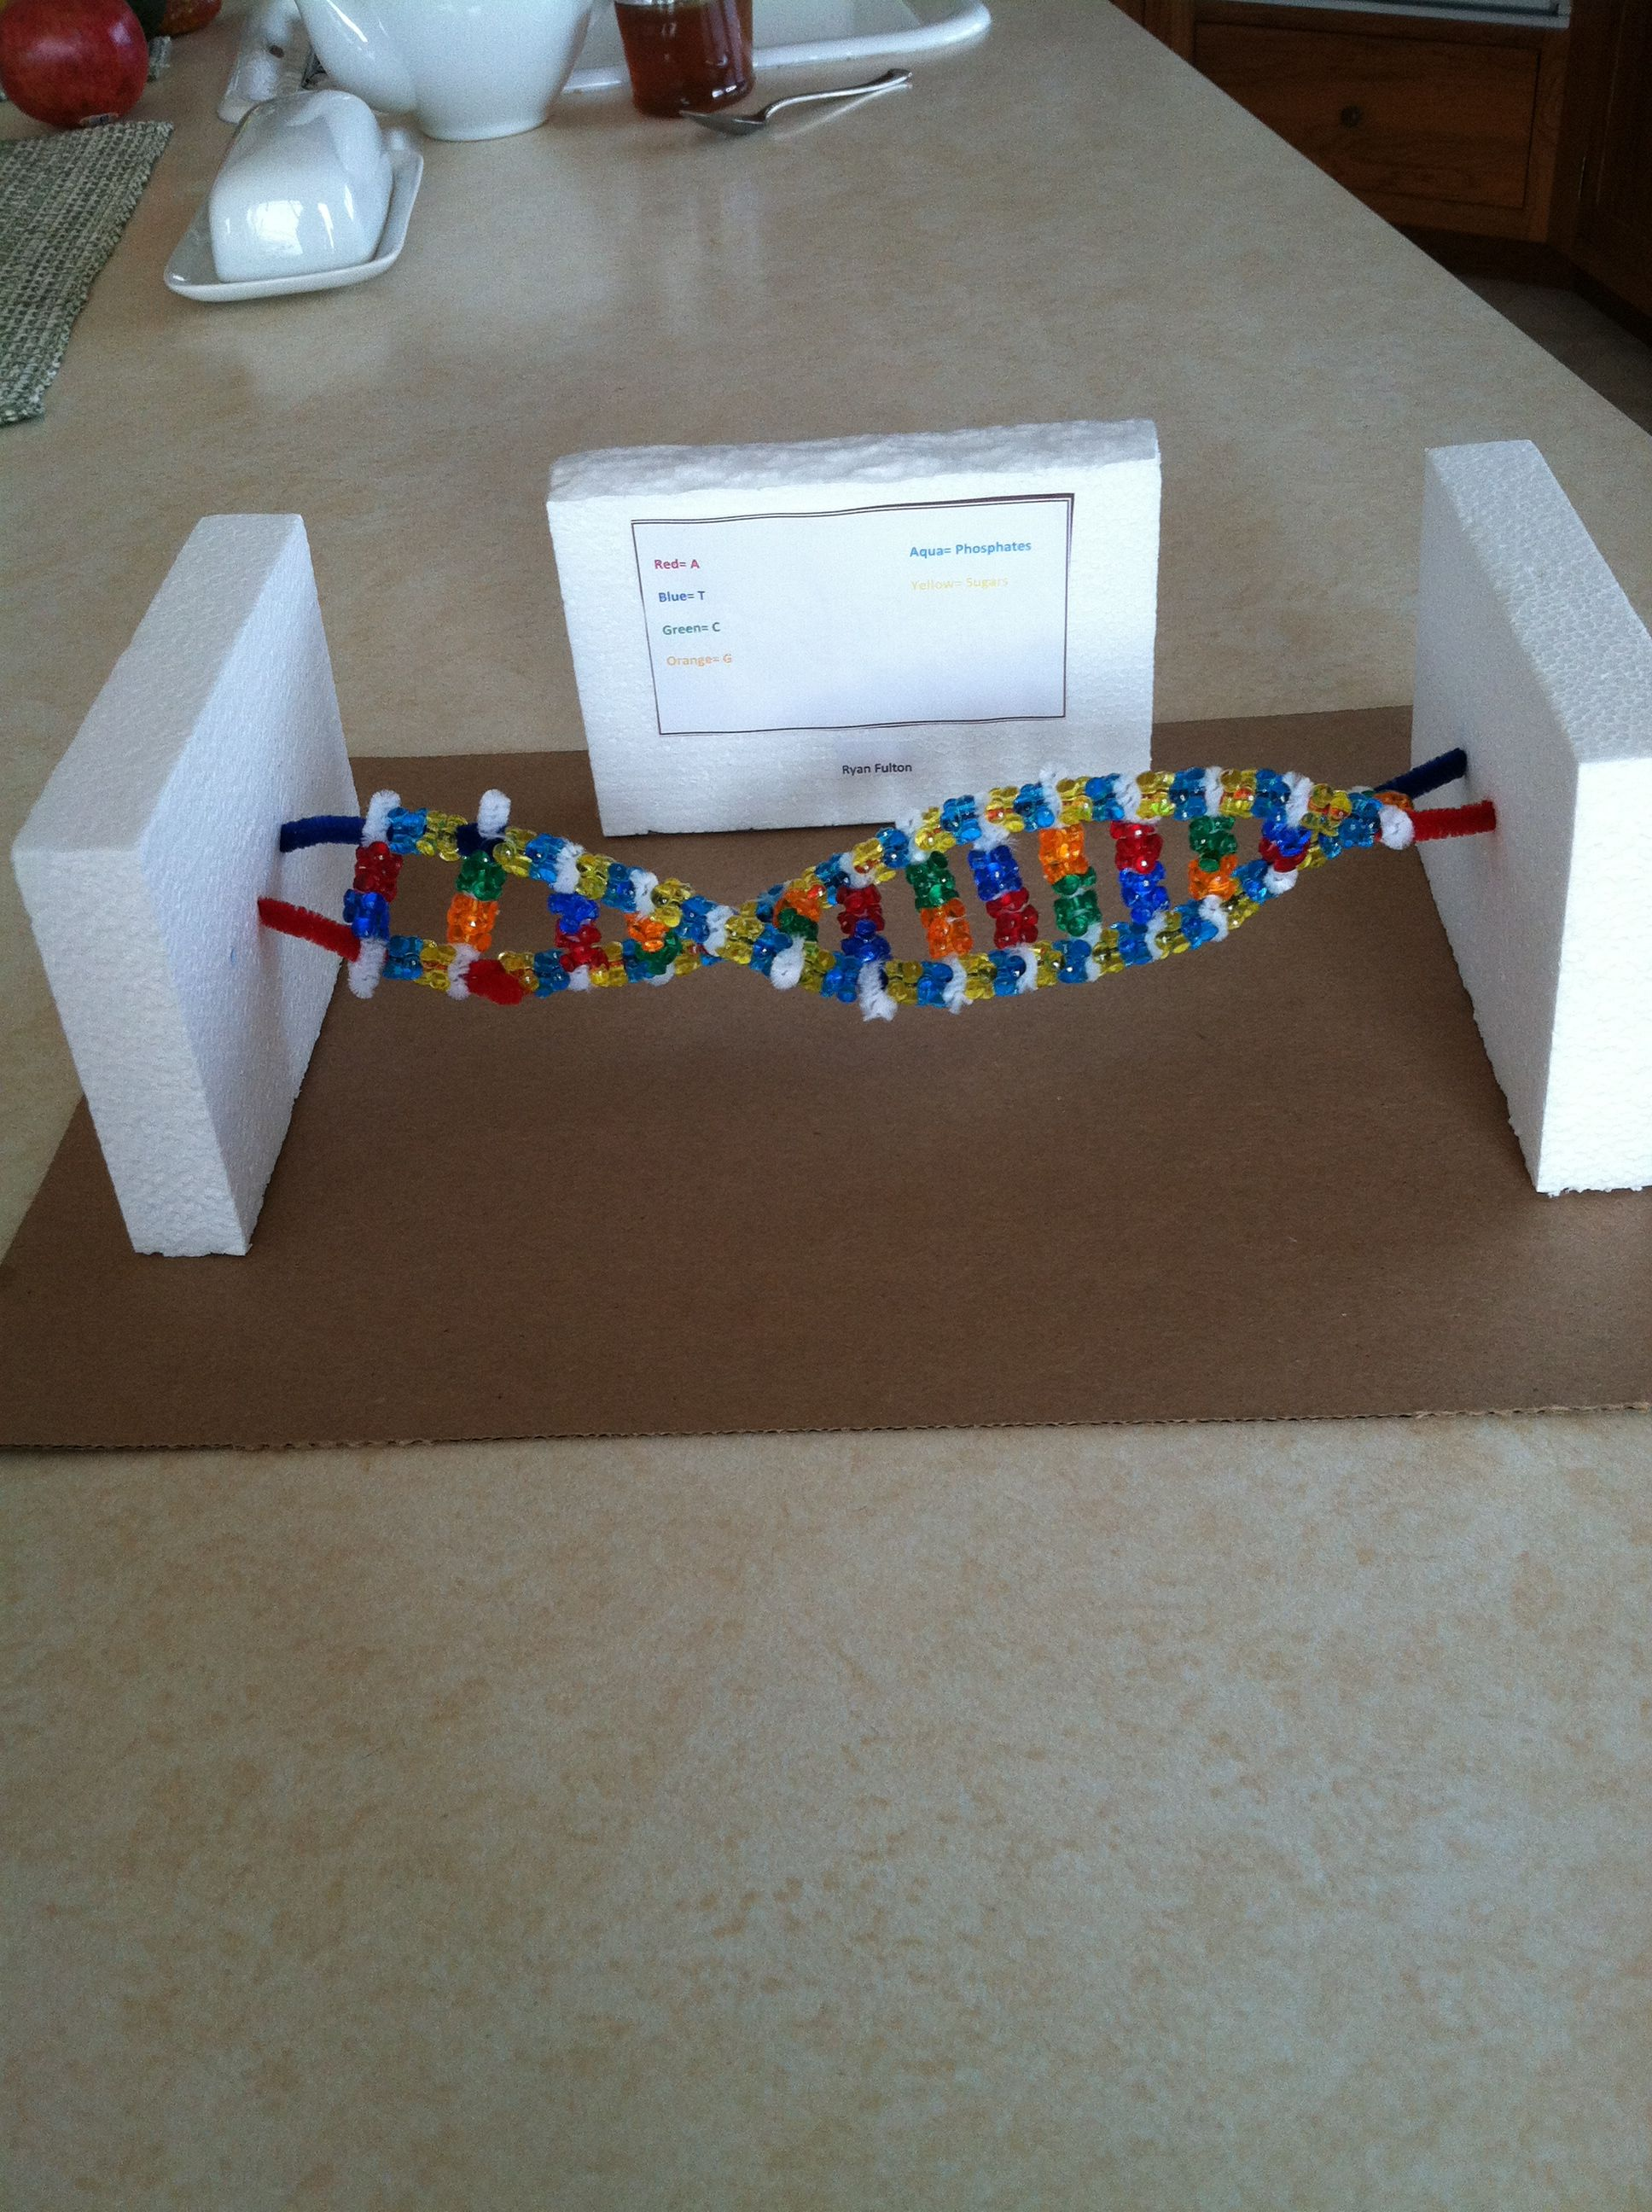 dna double helix by ryan 7th grade science project for my